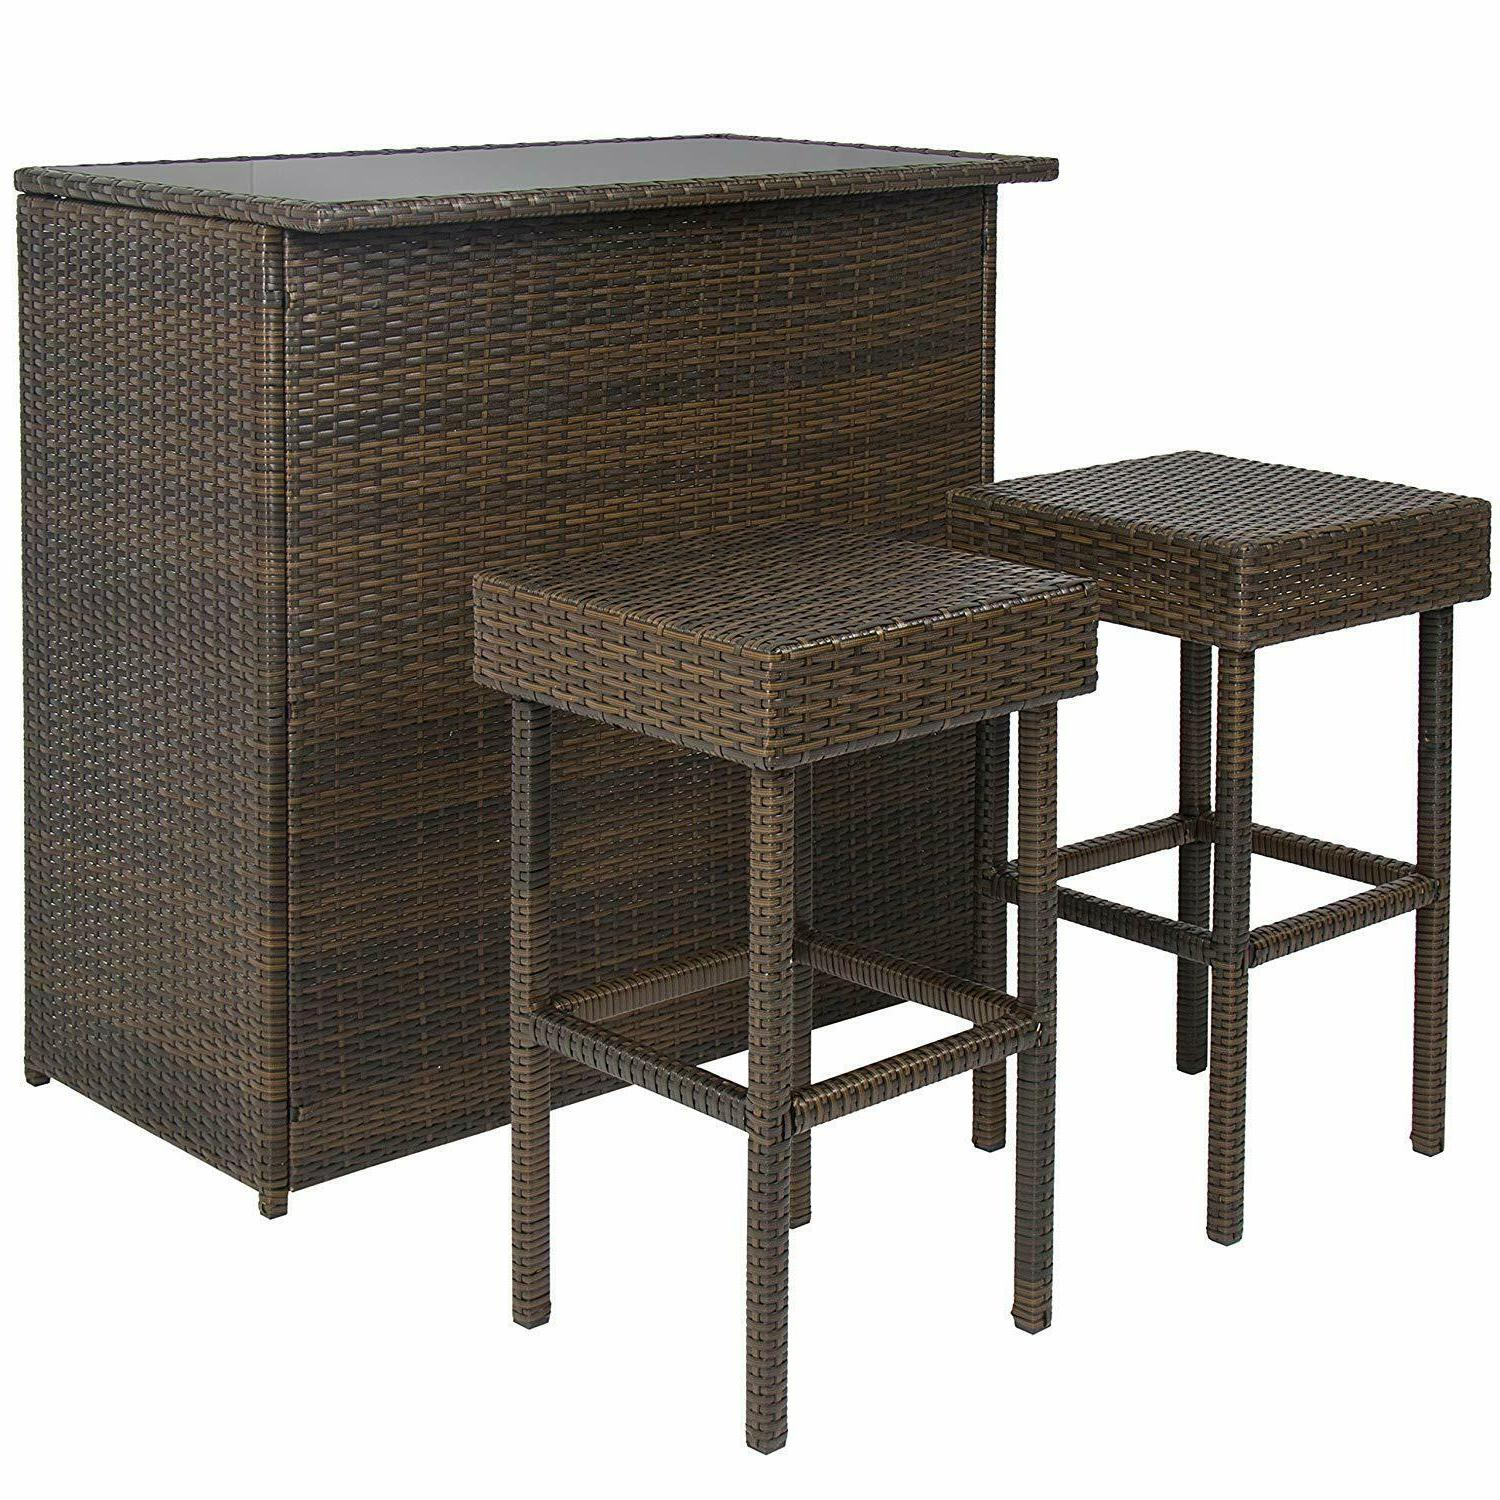 Best Choice All-Weather Table Set Patio,